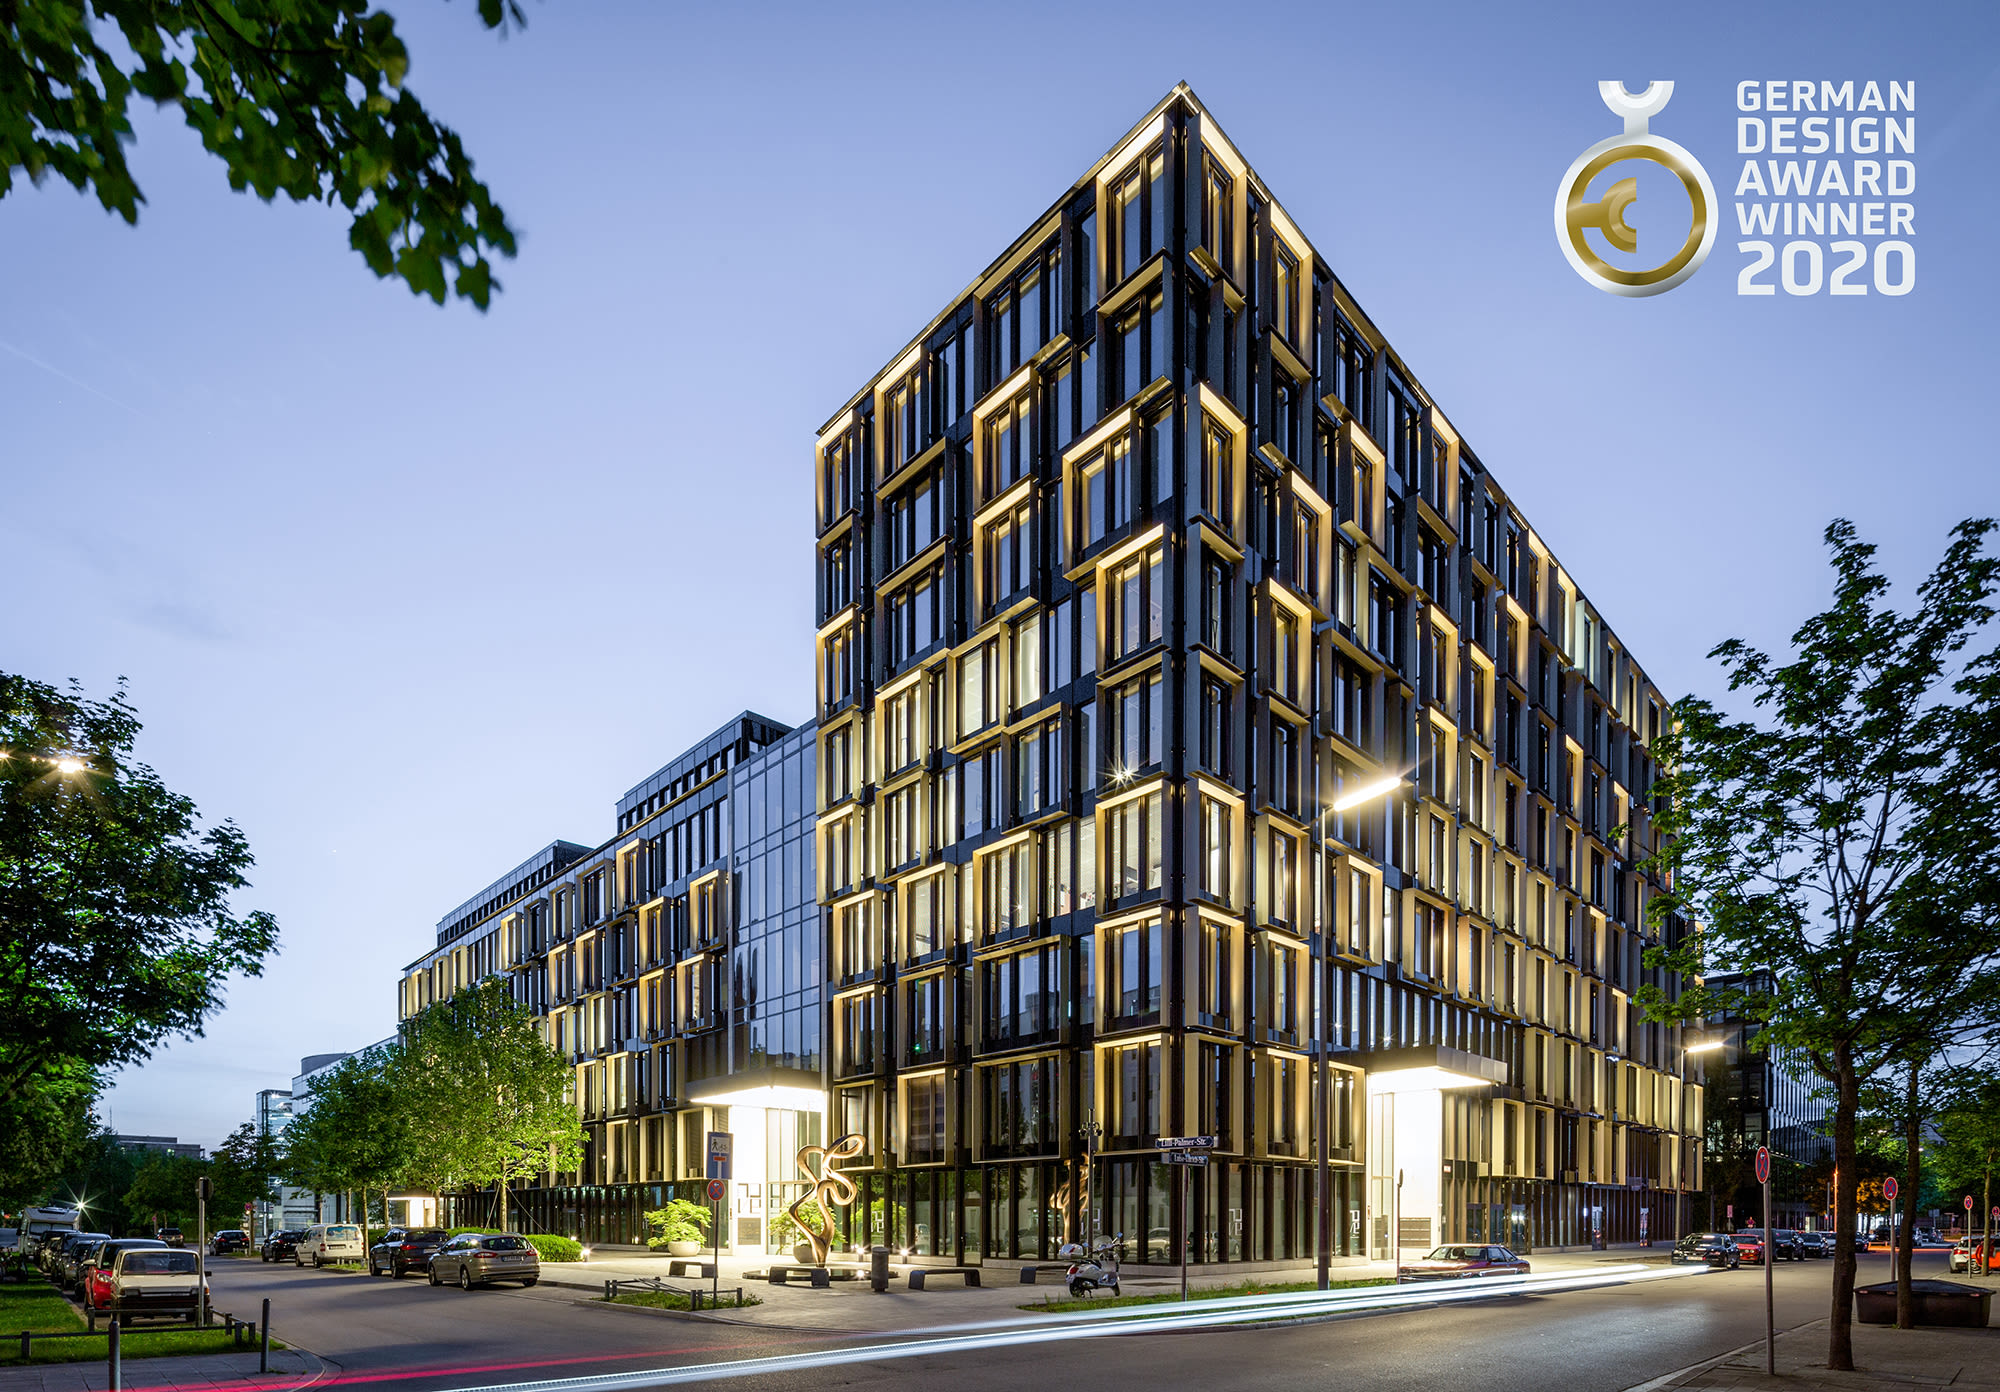 NOVE office building wins German Design Award 2020